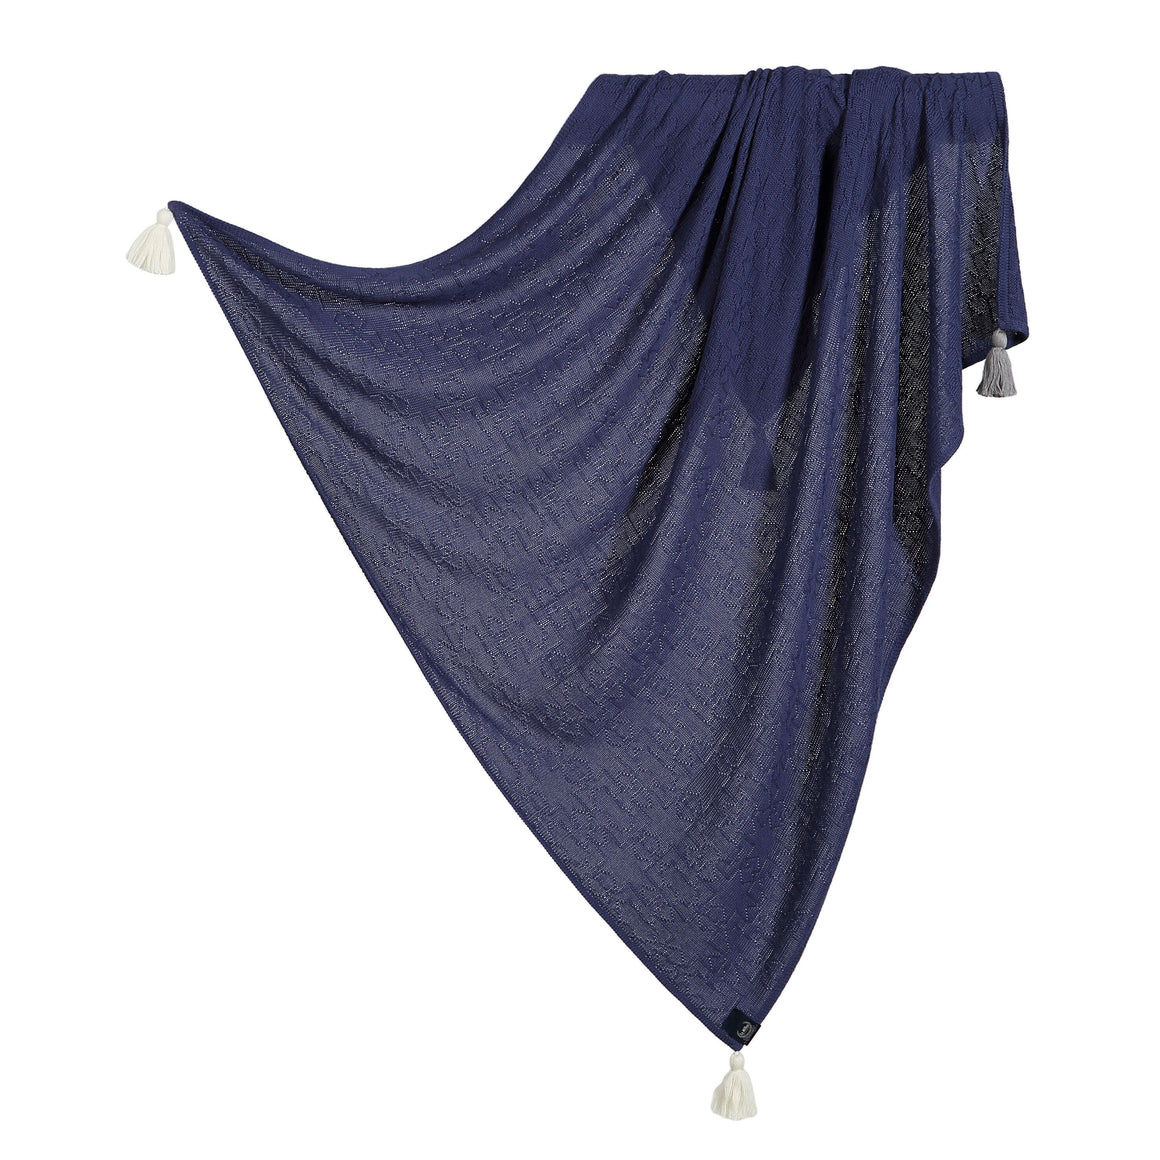 BAMBOO TENDER BLANKET viltti - Midnight Sky